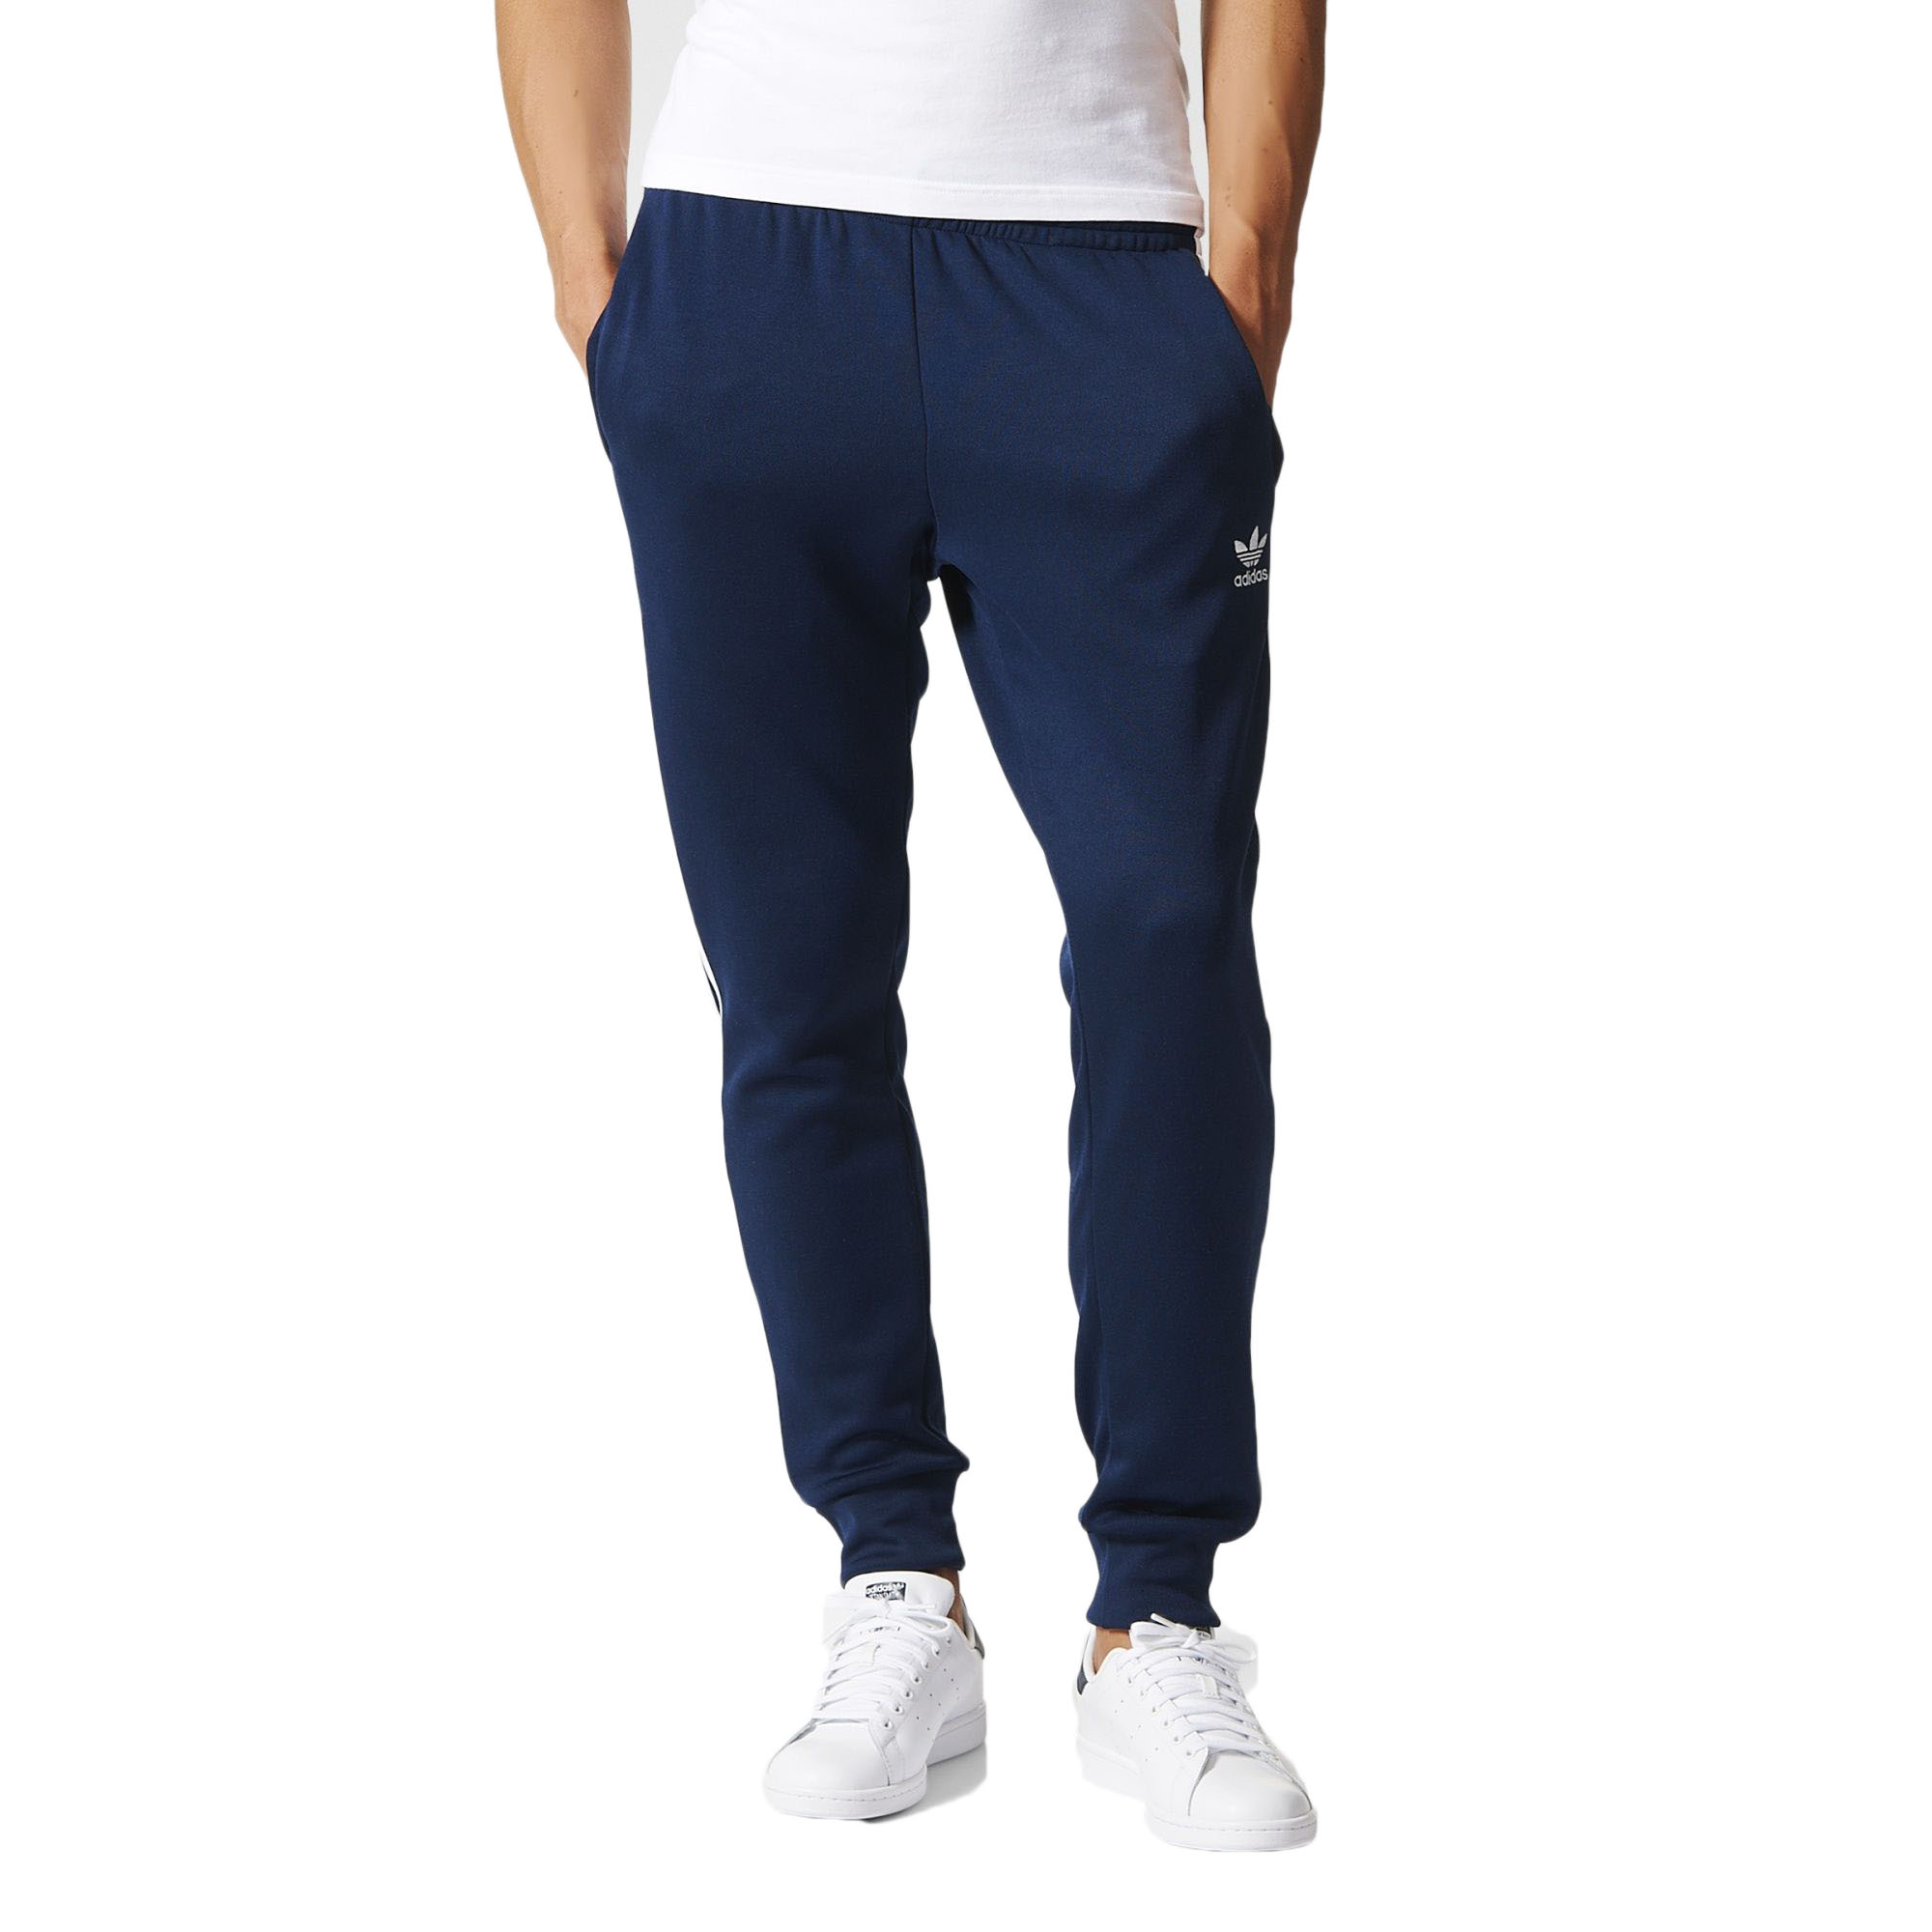 Details about Adidas Superstar Cuffed Men's Track Pants Navy Blue/White